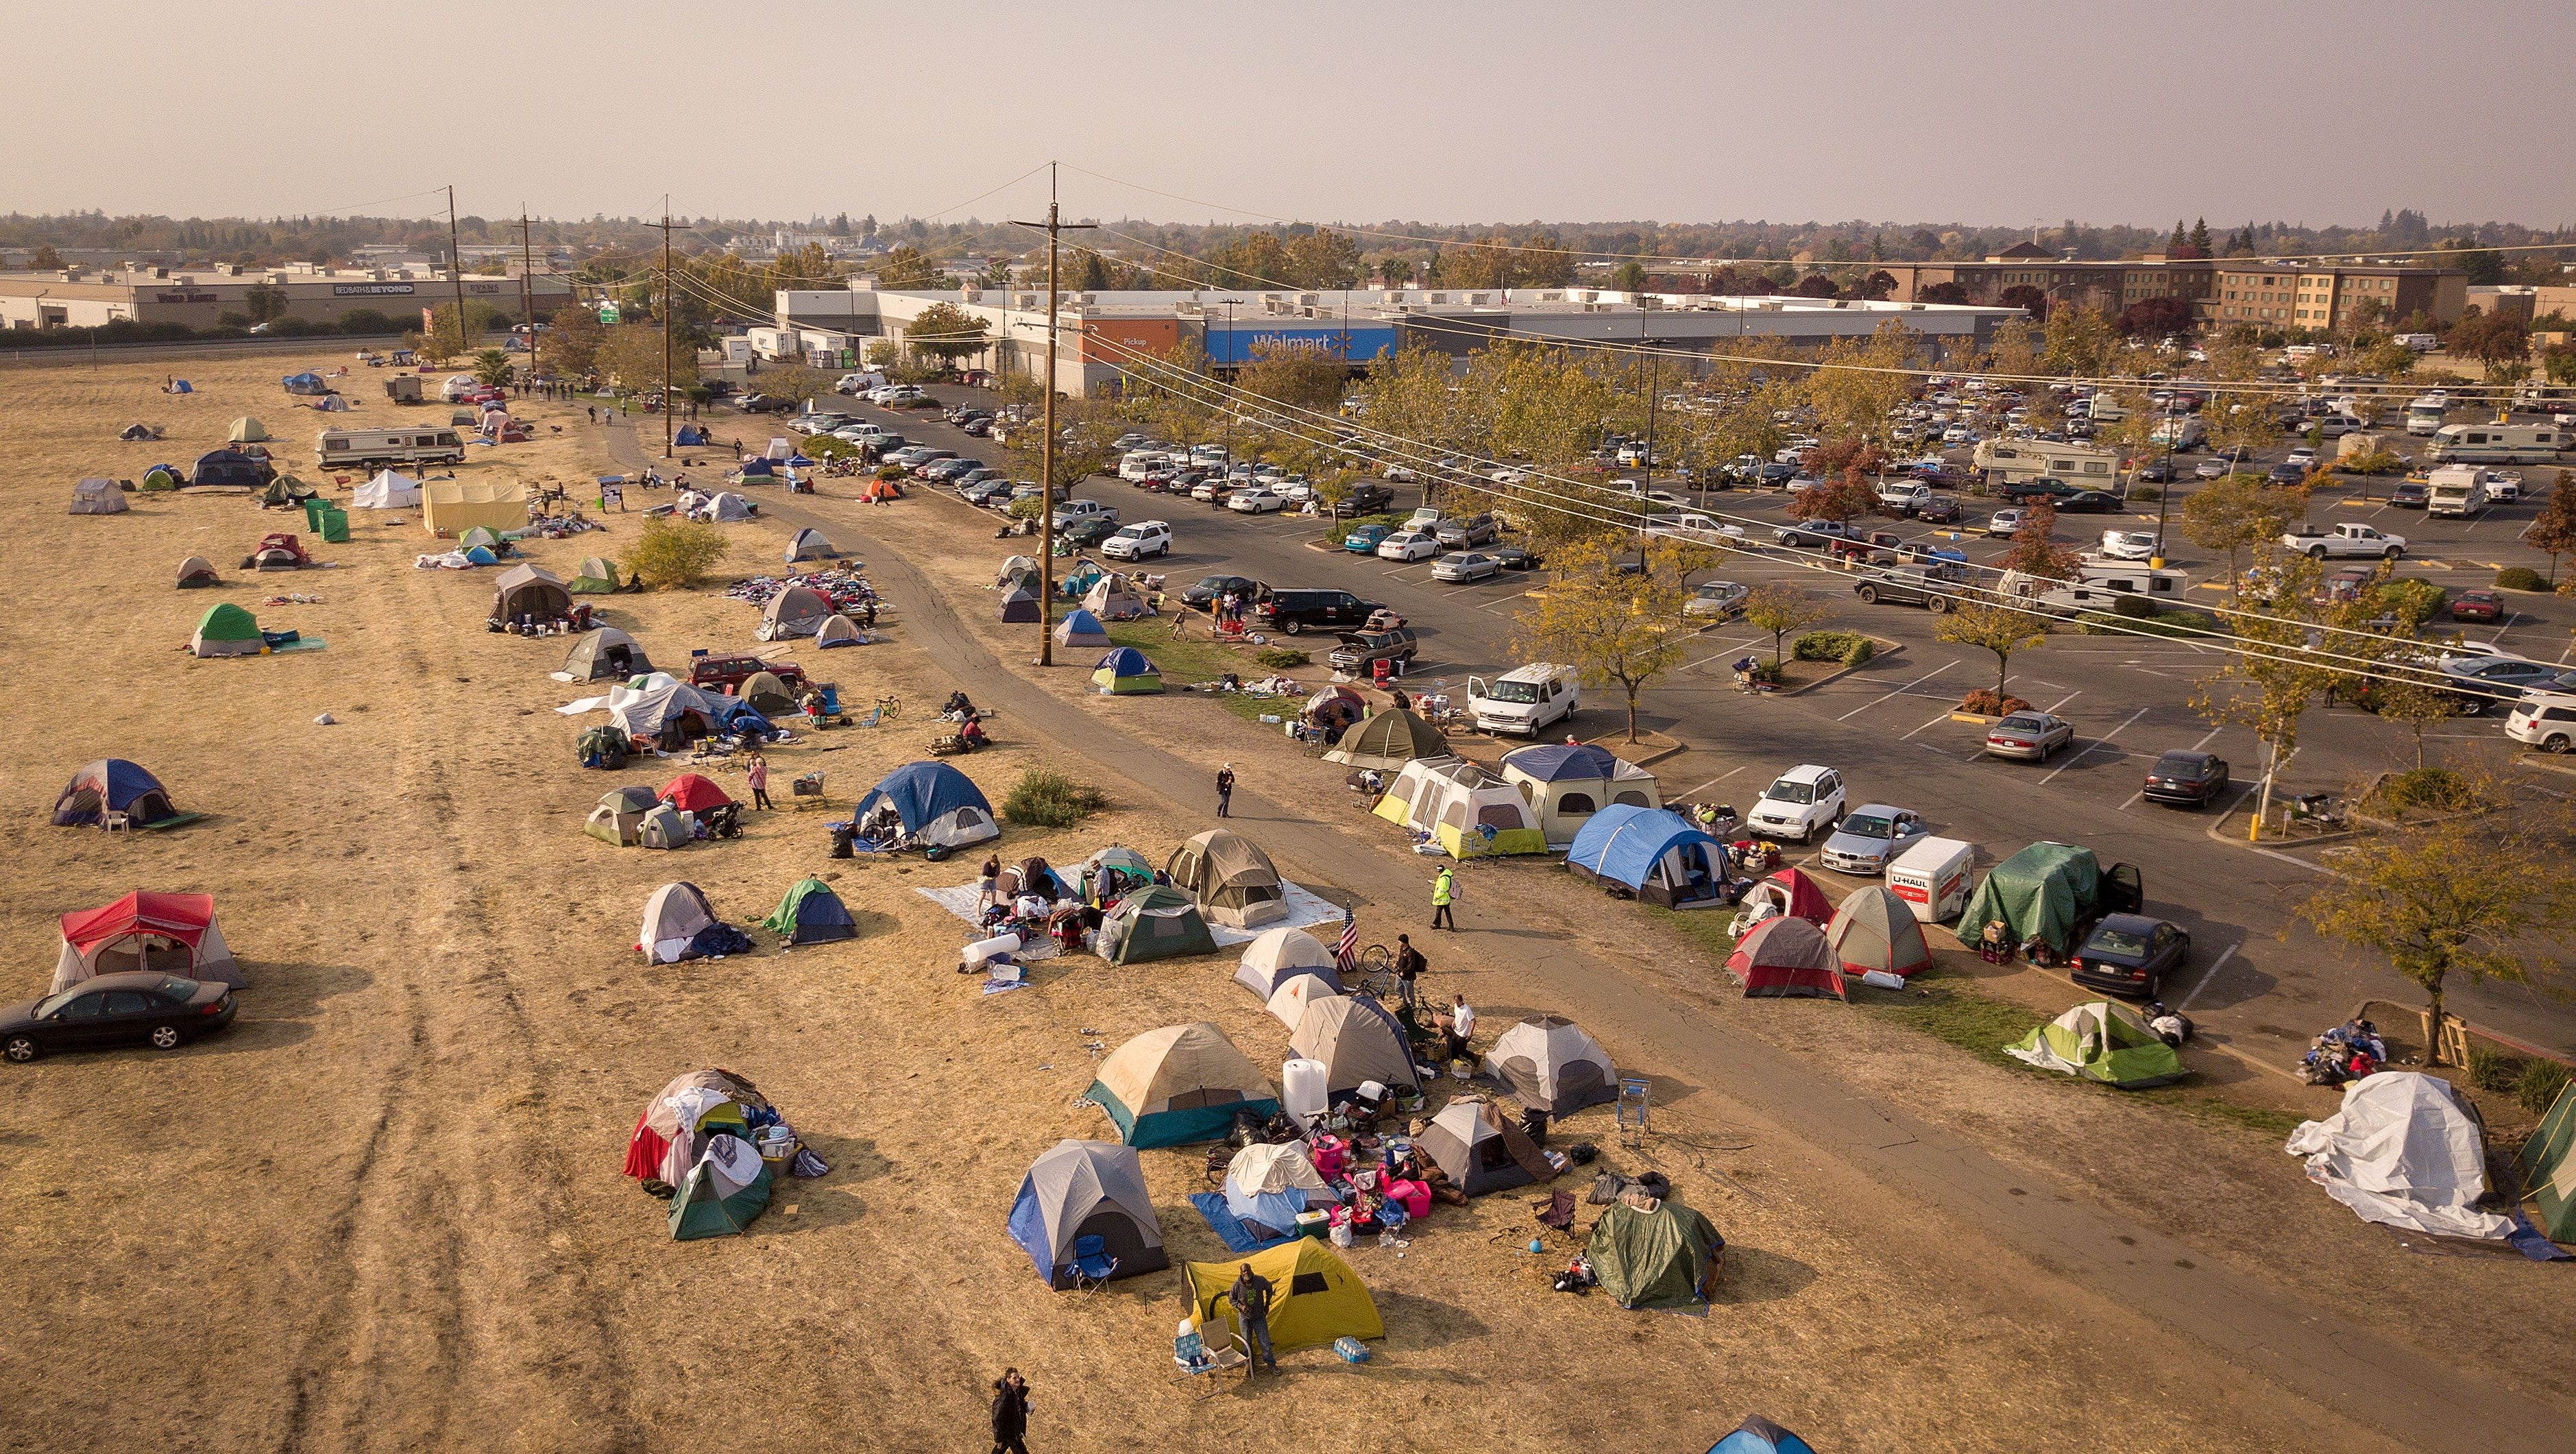 CHICO, CA - NOVEMBER 19: In this aerial photograph, an evacuee encampment is seen at a Walmart parking lot in Chico, California on November 19, 2018. (Photo by Josh Edelson for the Washington Post)